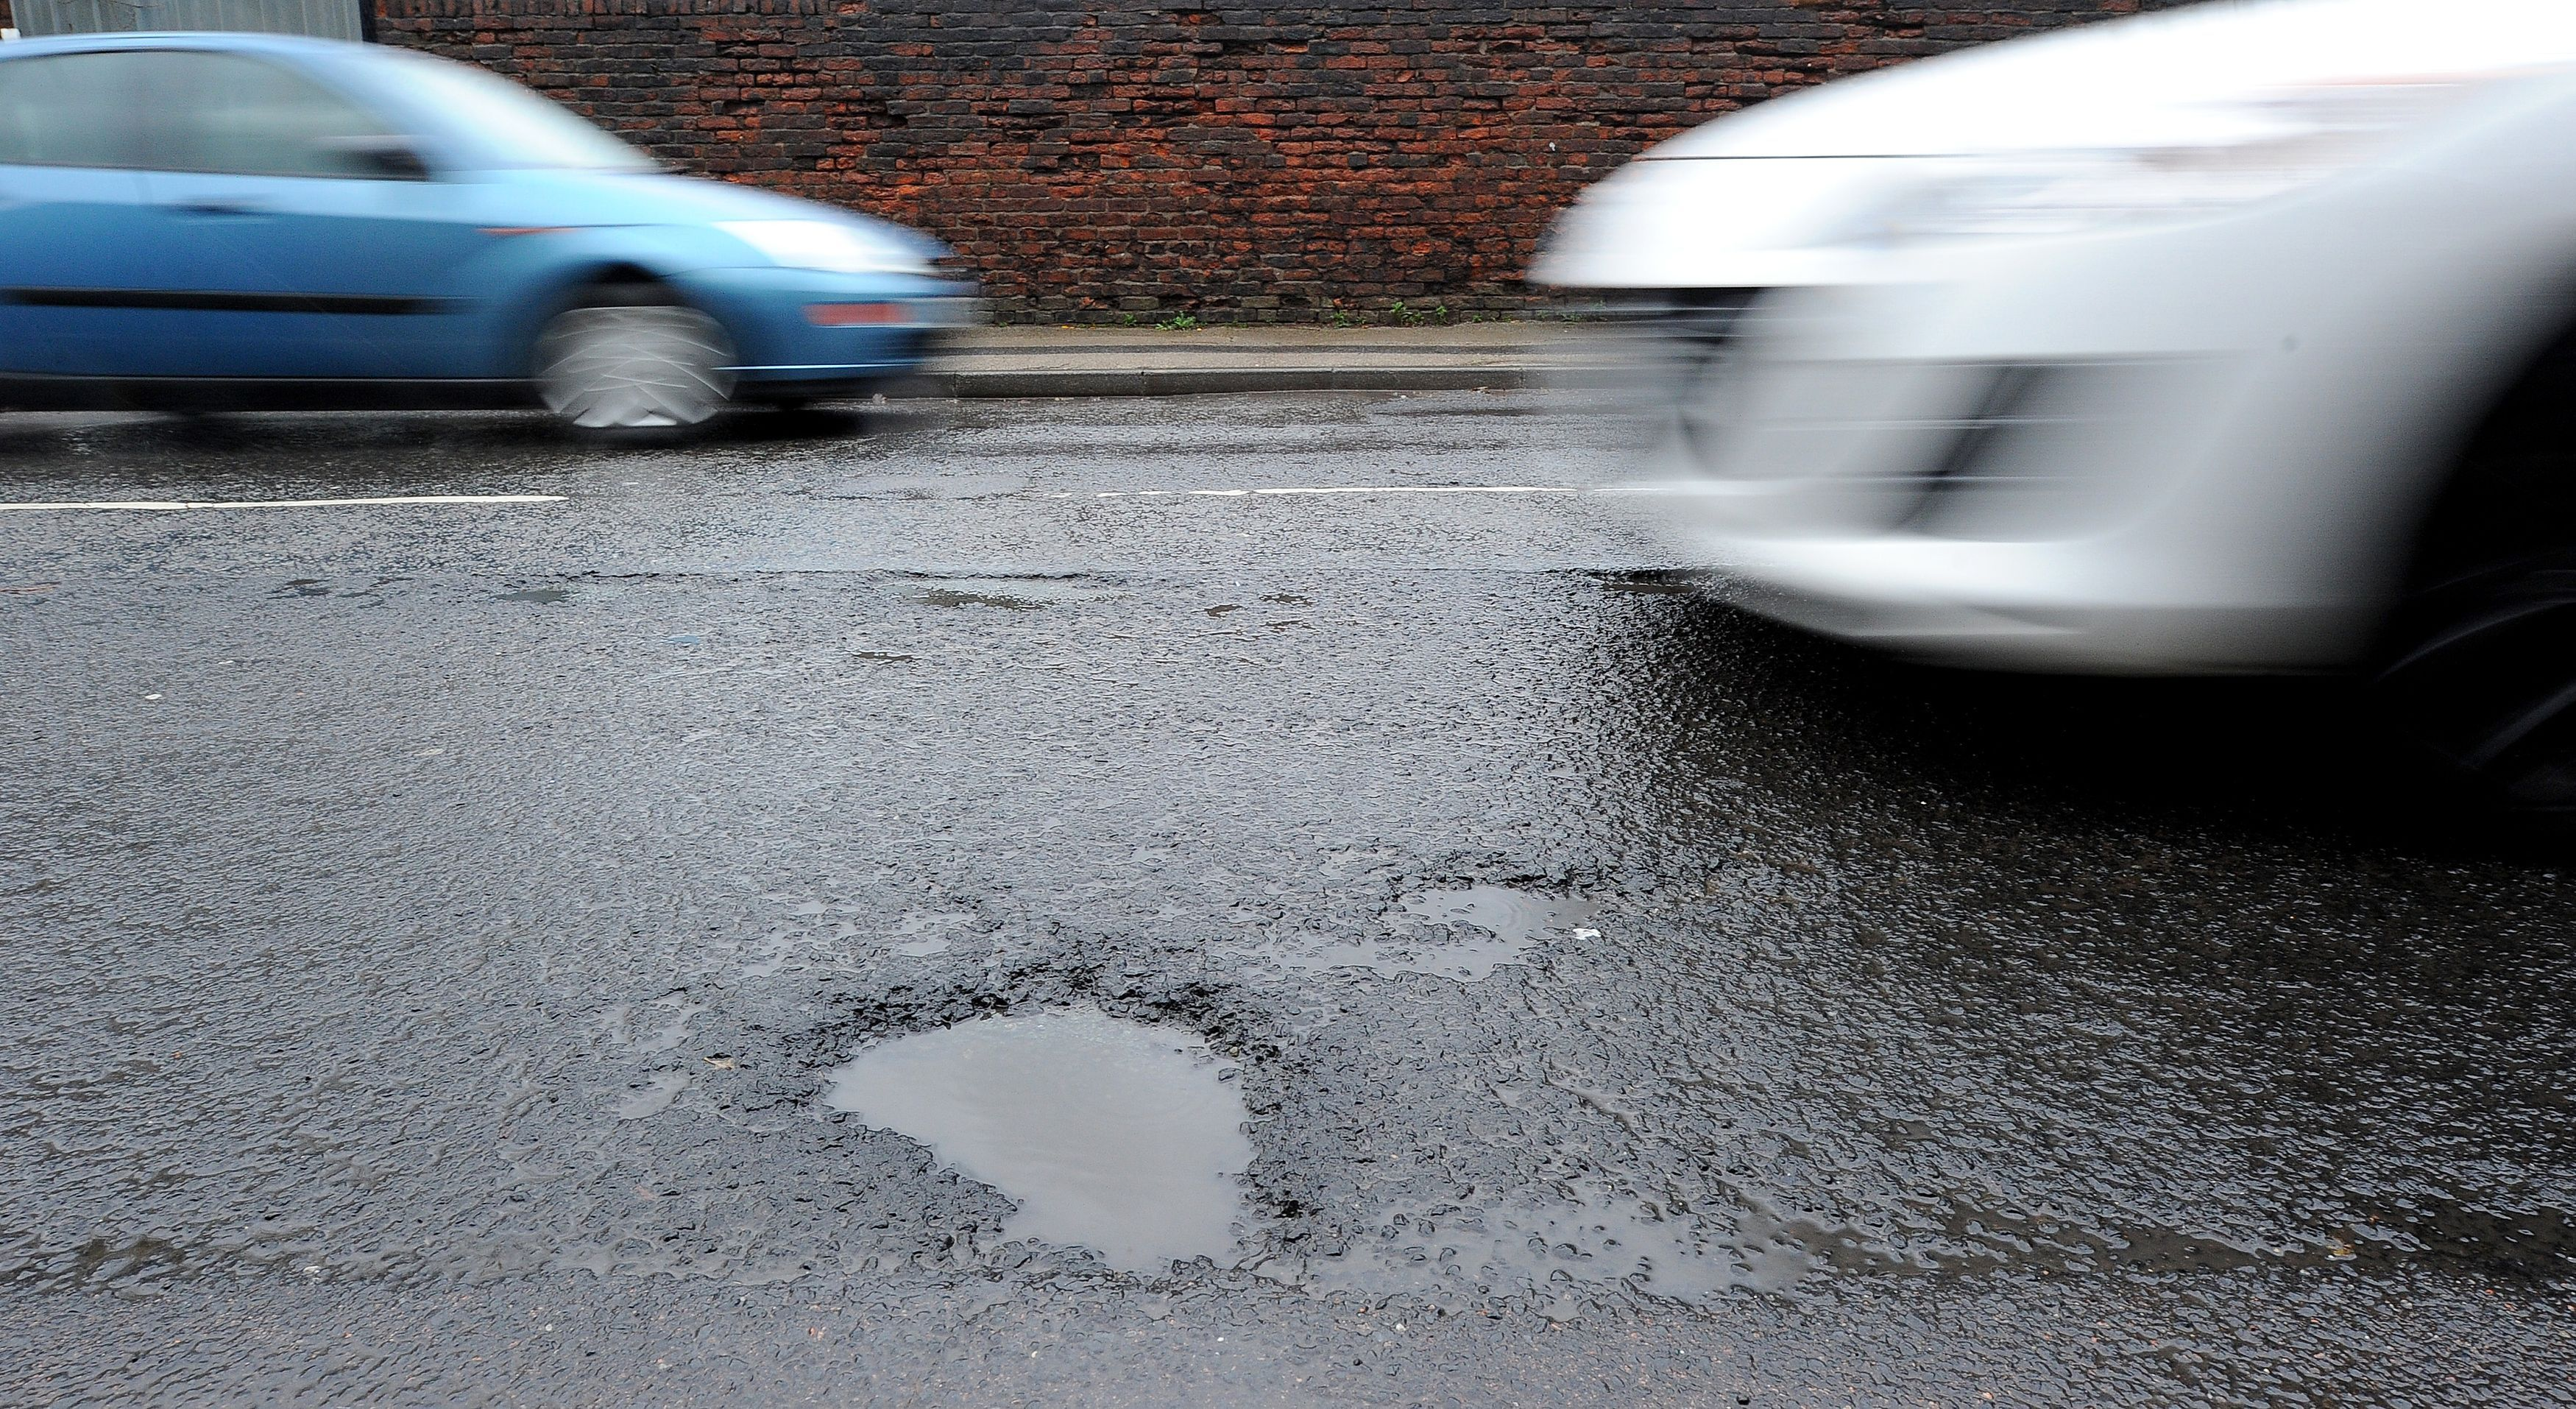 UK roads are likely to see potholes appearing at an 'unprecedented rate' over the coming months.